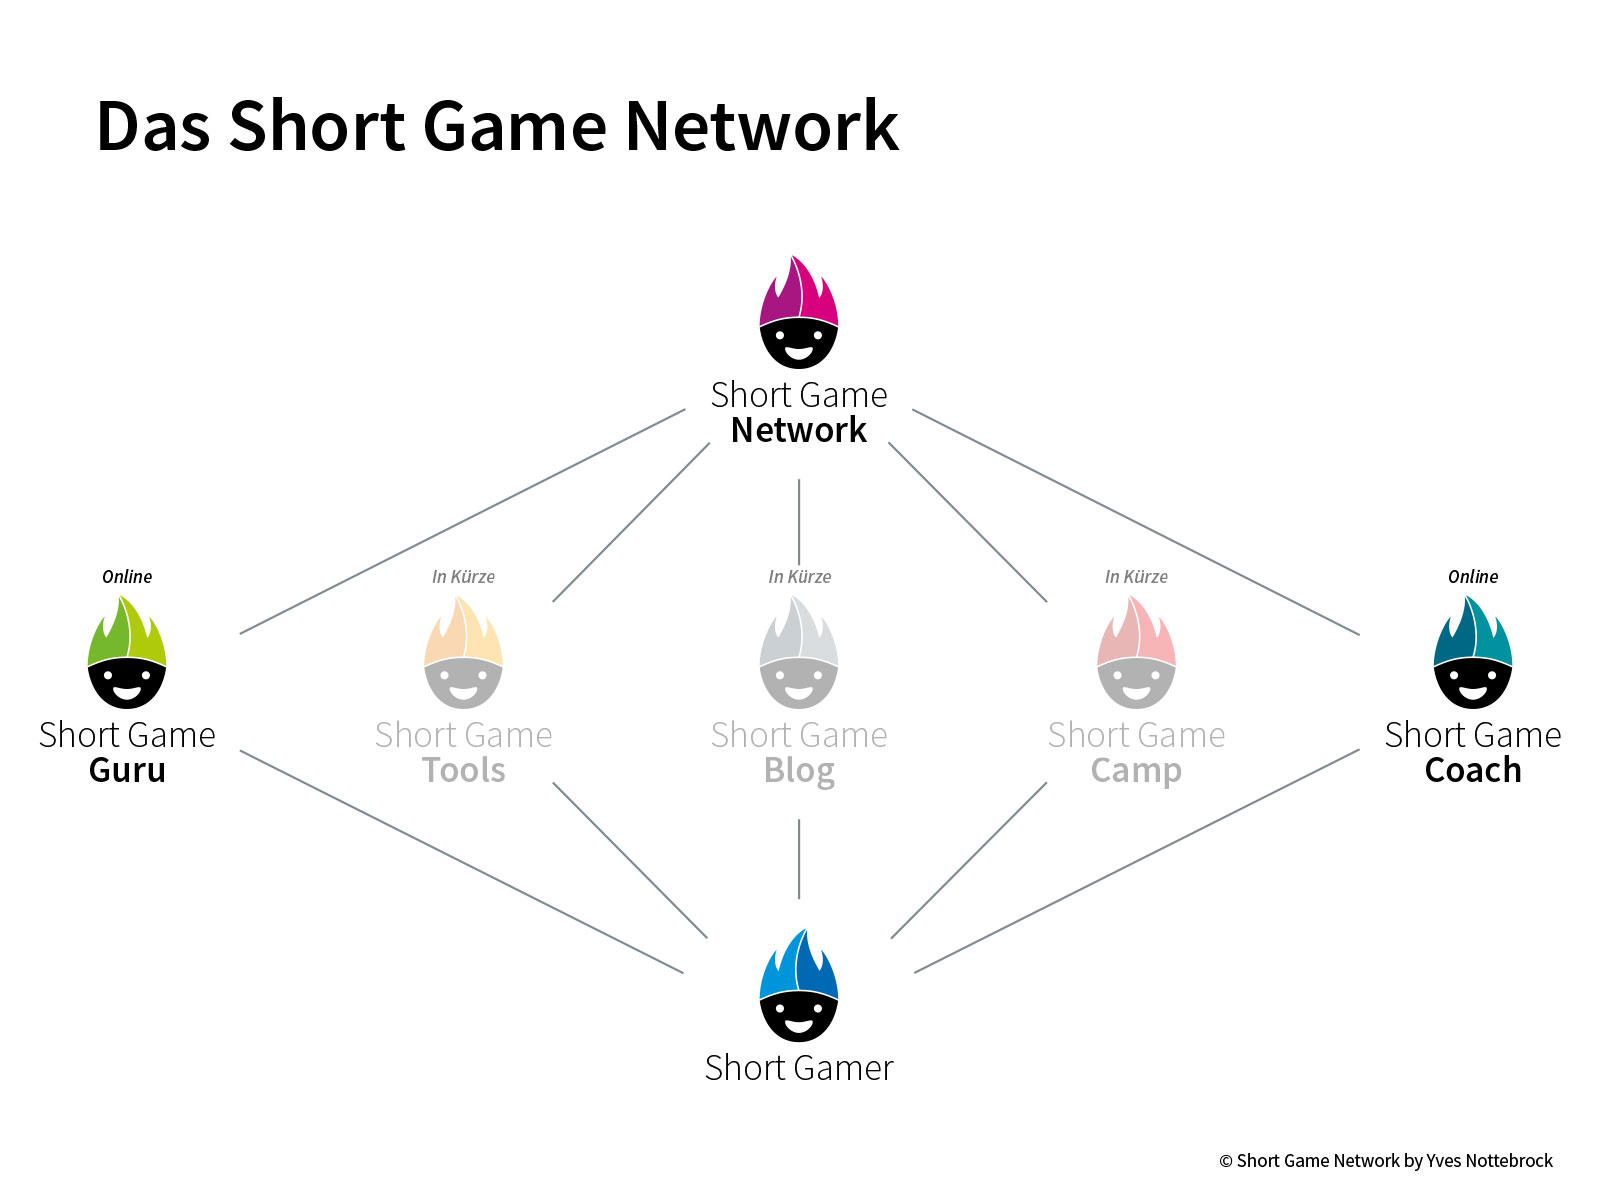 Short Game Network